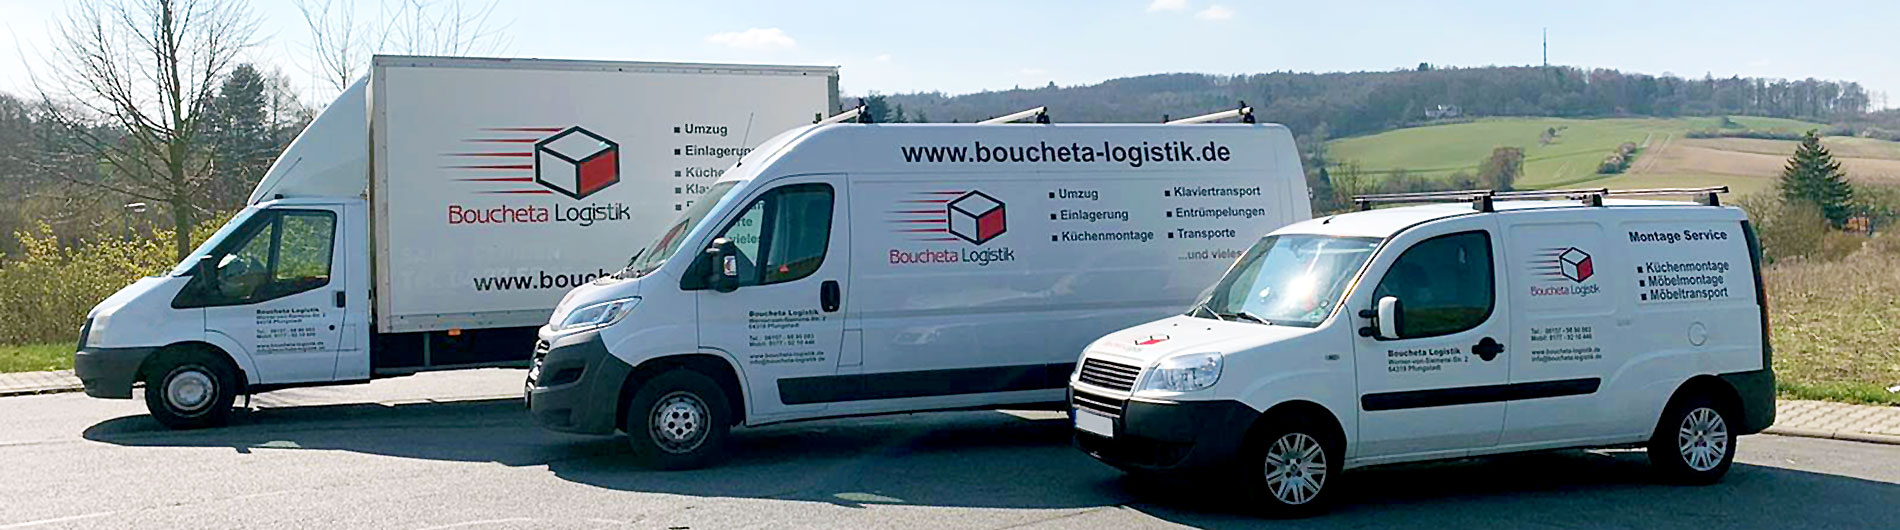 Boucheta Logistik und Transport in Darmstadt